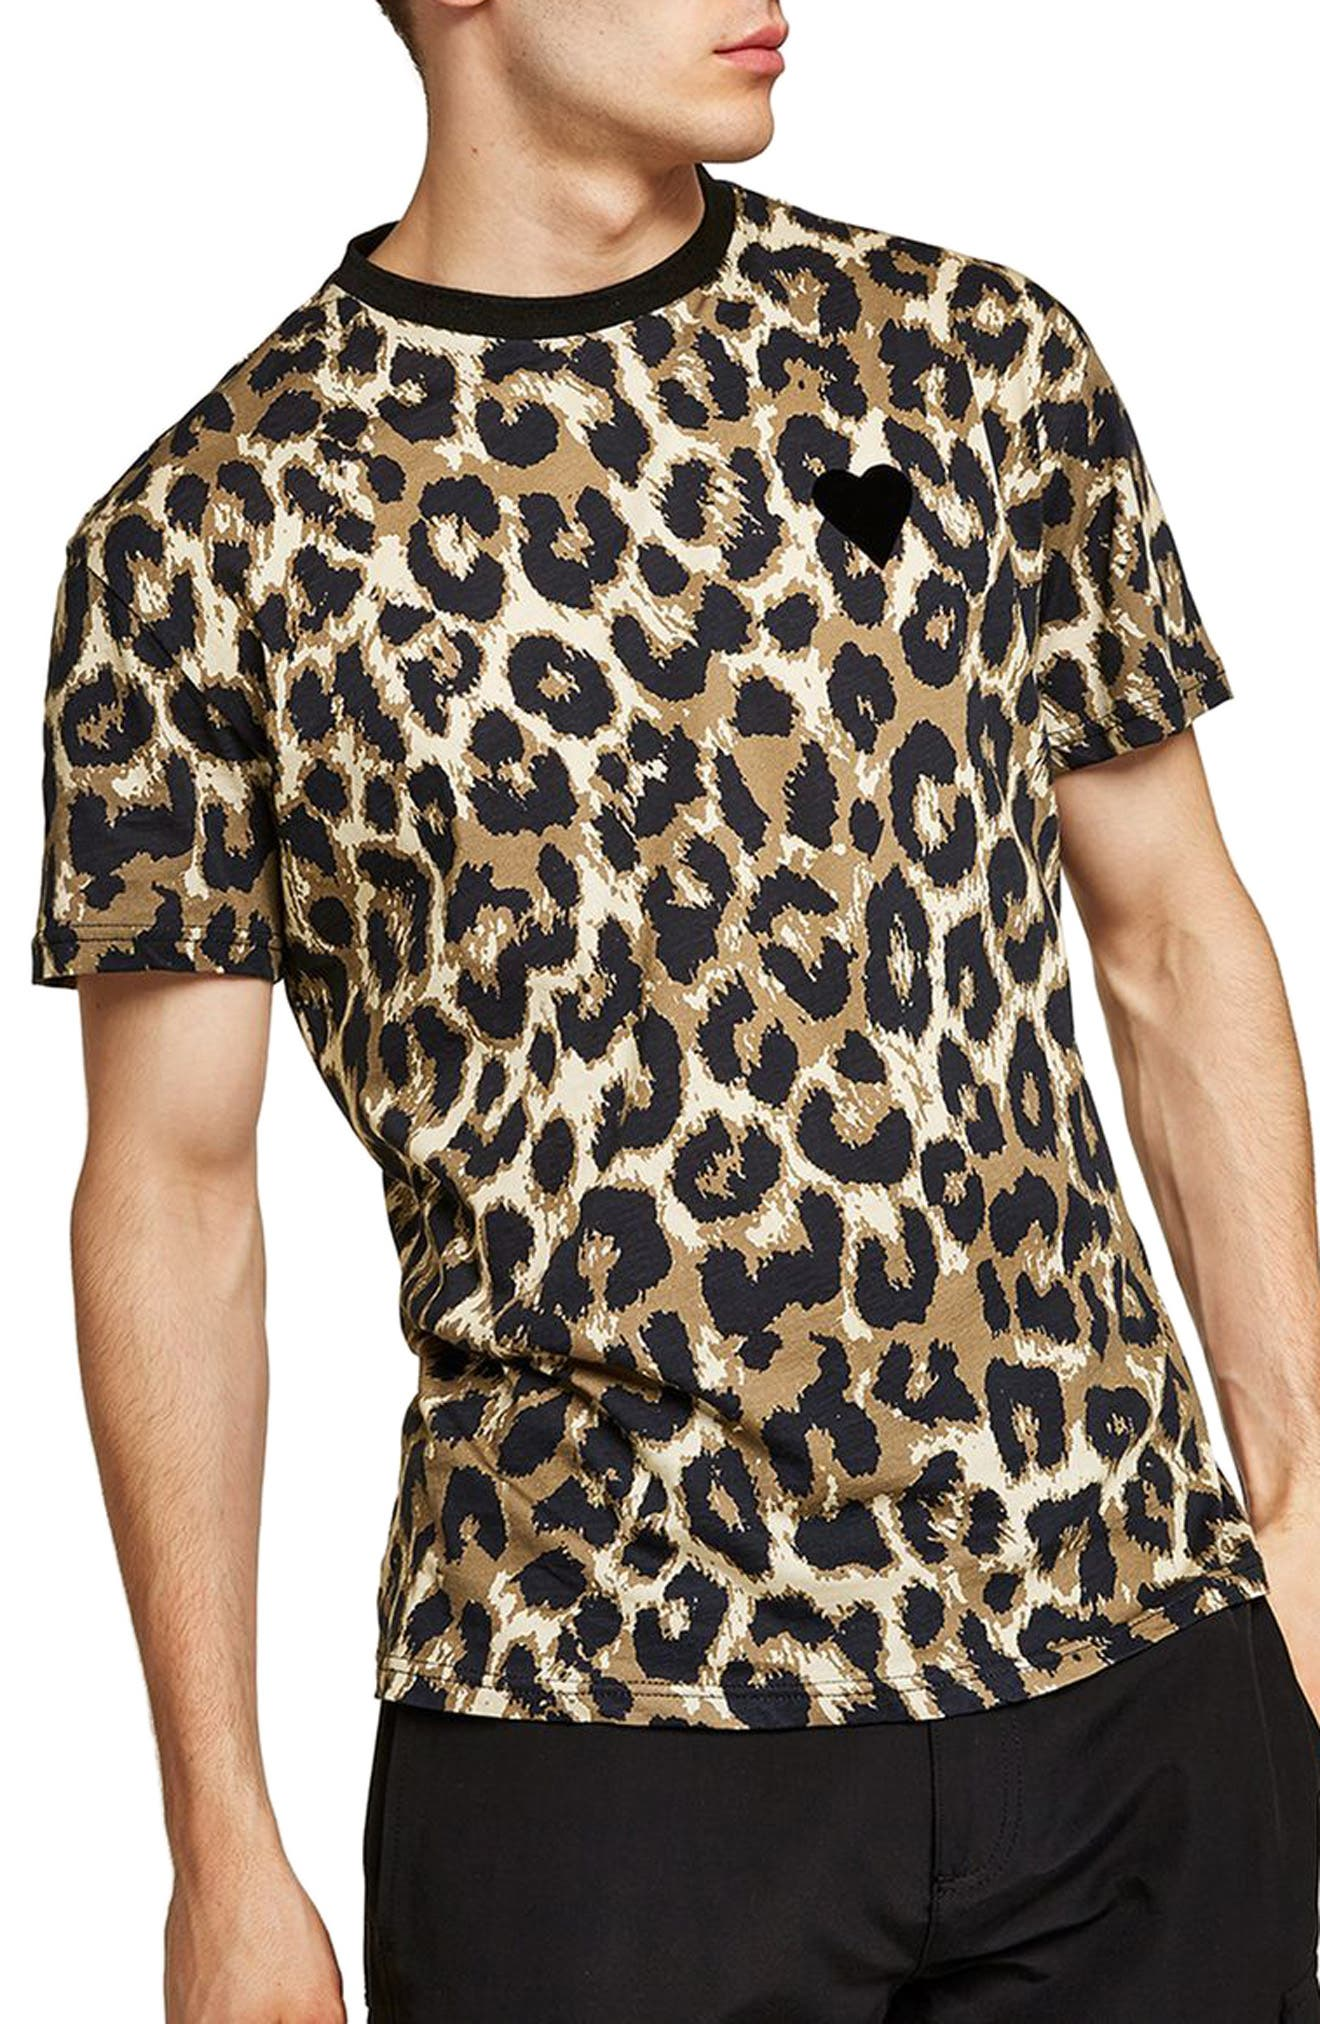 Classic Fit Leopard Print T-Shirt,                             Main thumbnail 1, color,                             Brown Multi